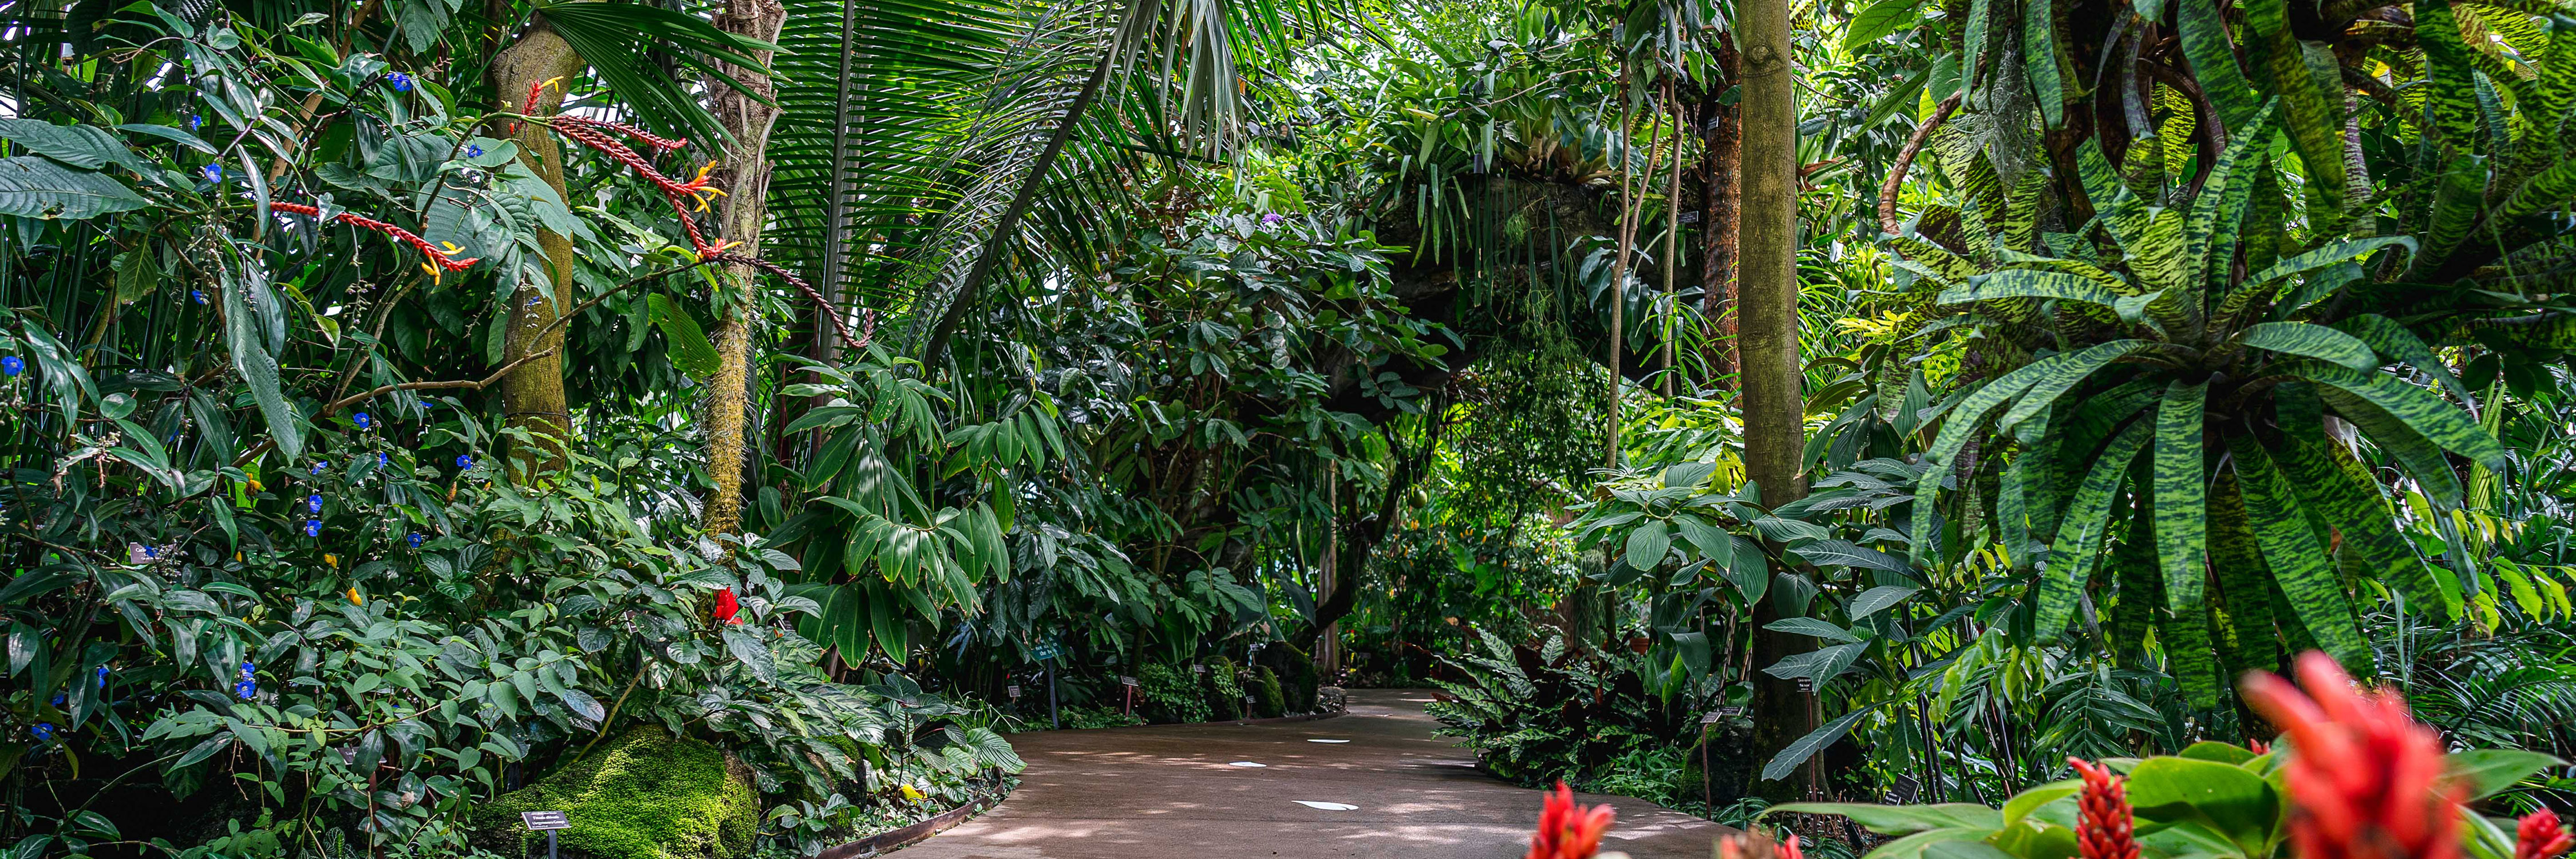 Lowland rainforest gallery in the Conservatory